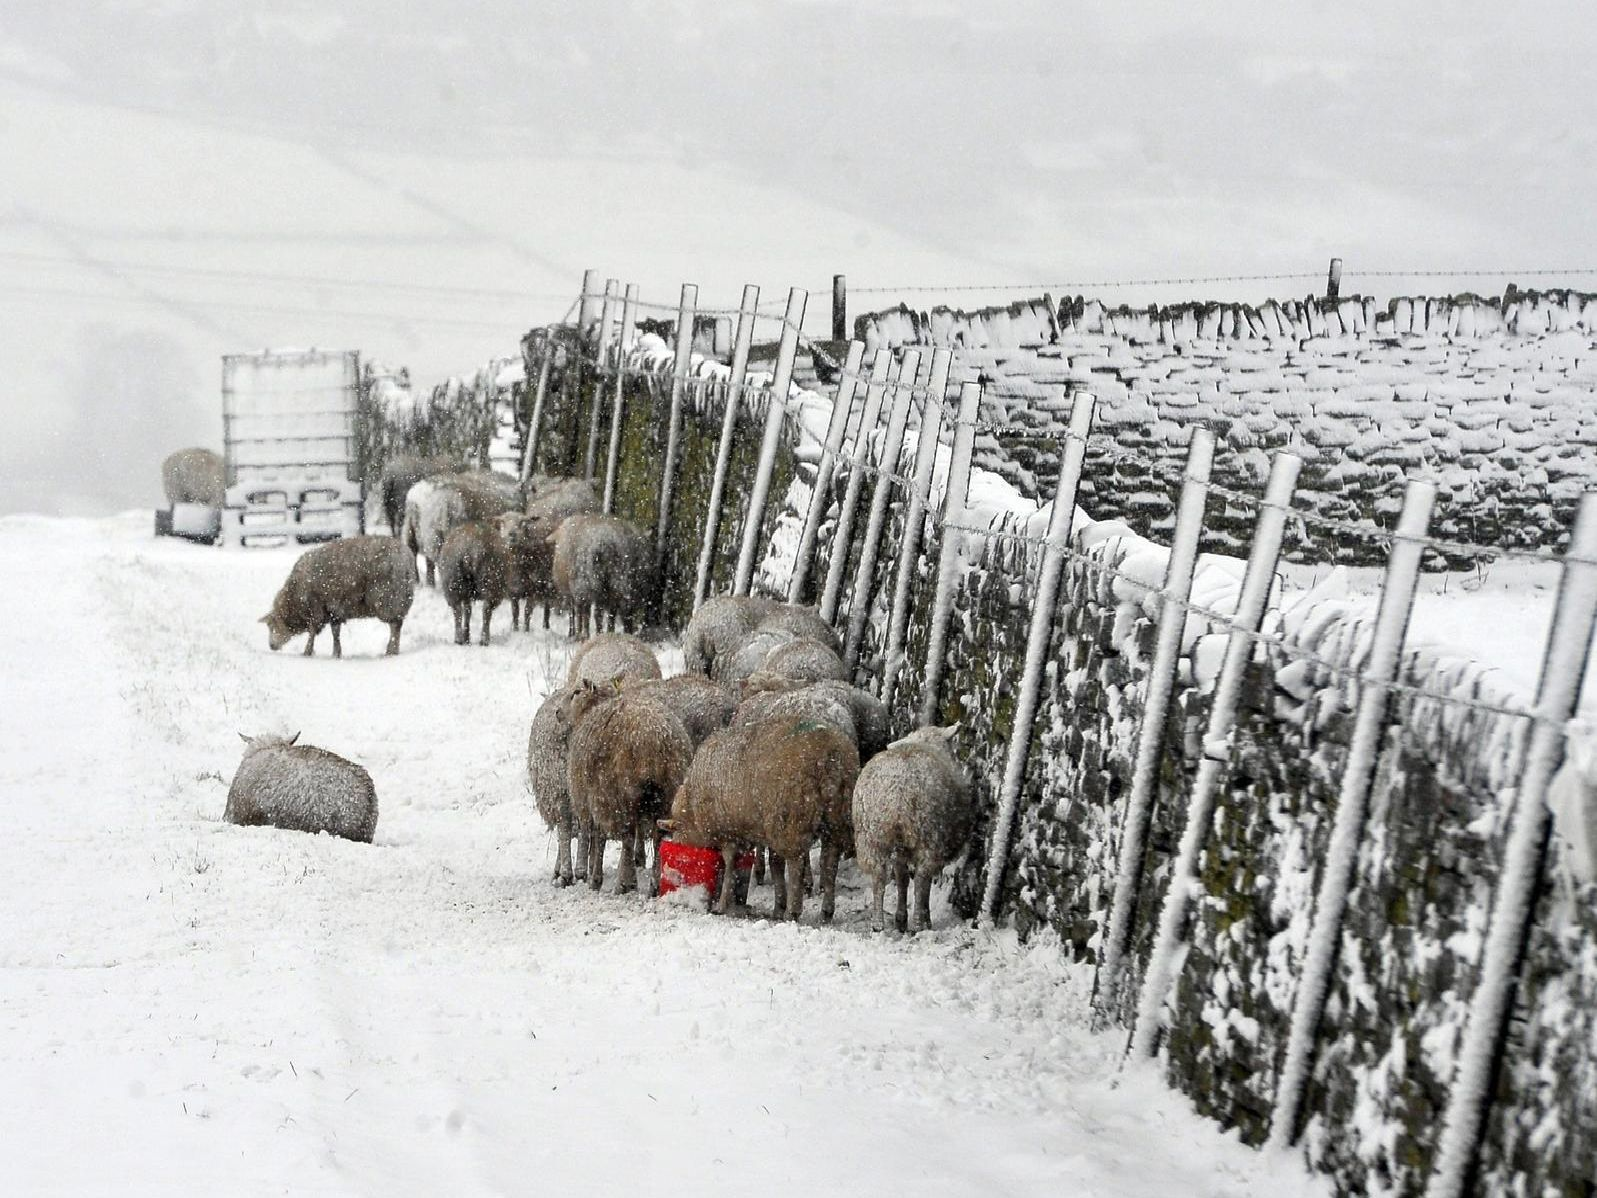 Sheep huddled together in Queensbury